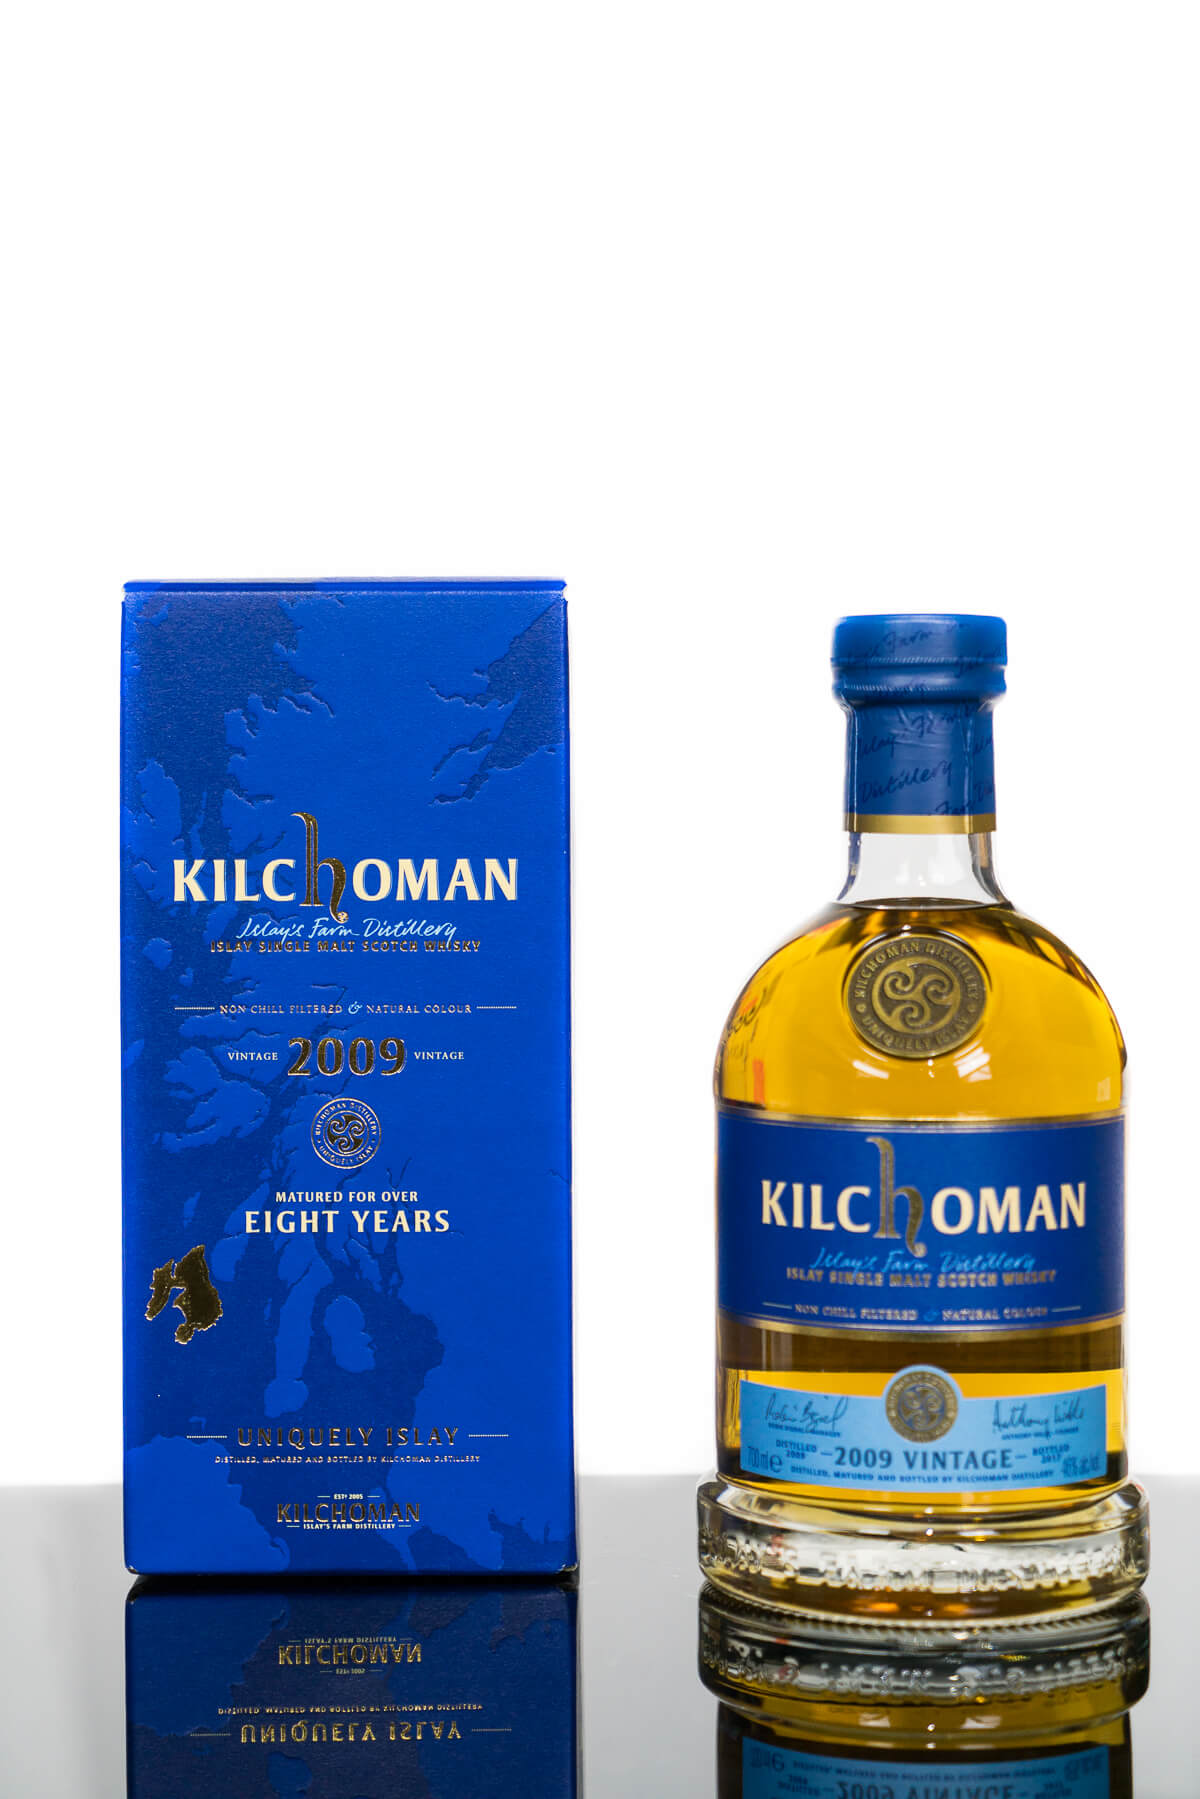 Kilchoman 2009 Vintage Islay Single Malt Scotch Whisky (700ml)